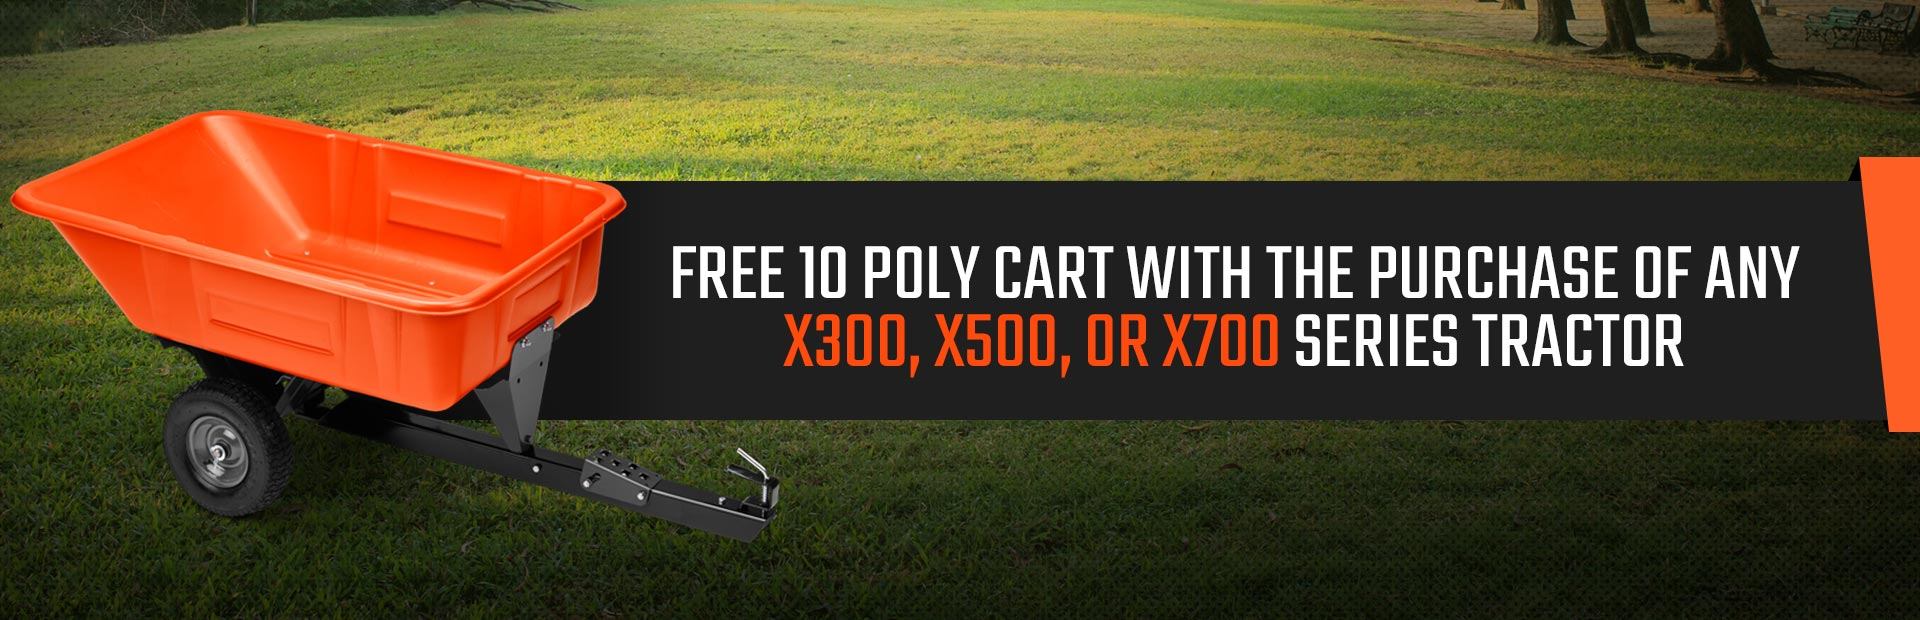 Get a free 10 poly cart with the purchase of any John Deere X300, X500, or X700 series tractor!